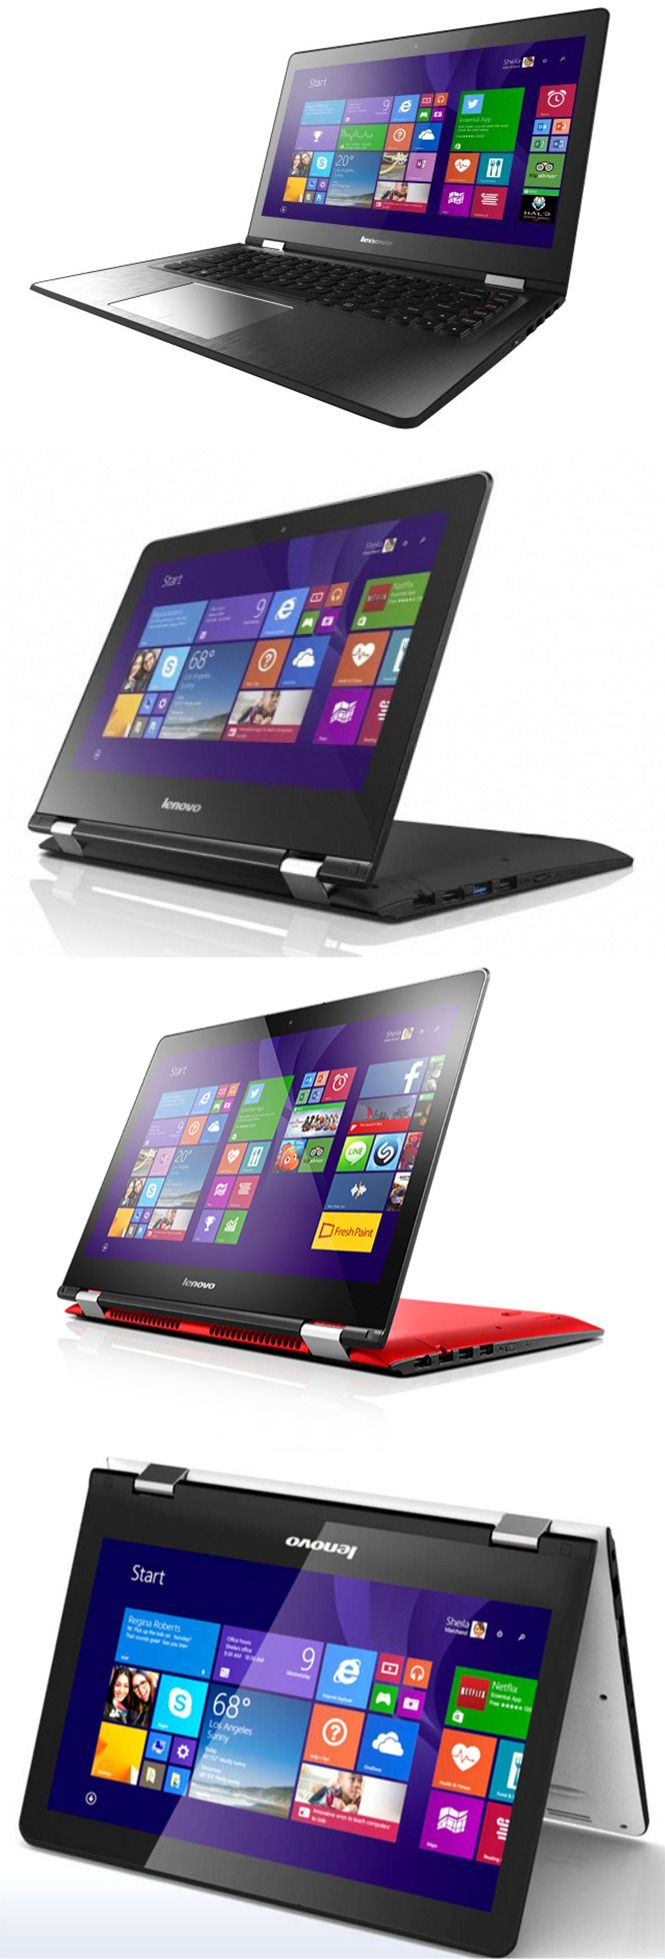 Lenovo Stretched Yoga Series with Yoga 300 and 500 #lenovo #laptop